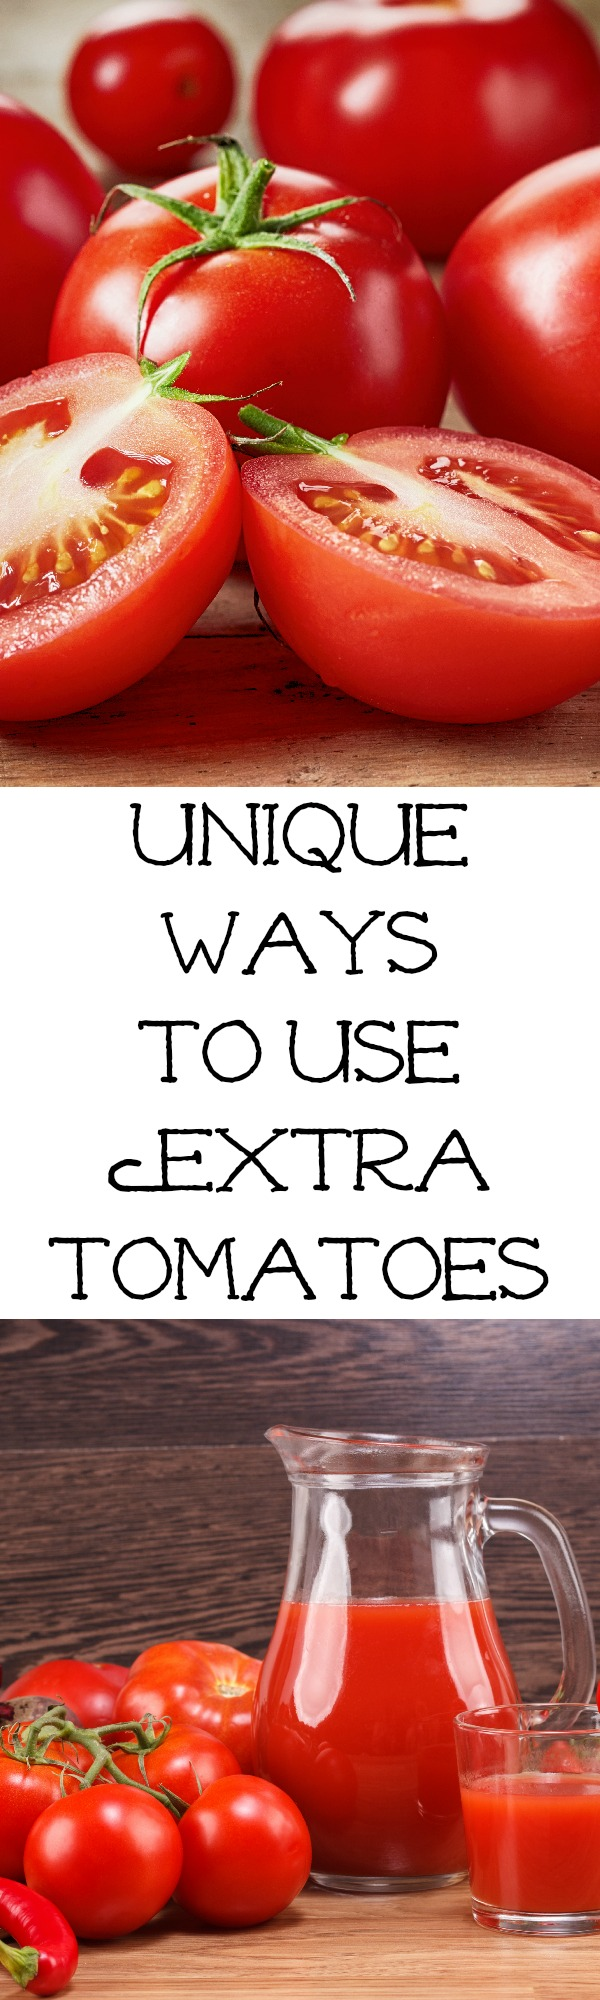 Unique tomato recipe ideas full of flavor to make when you have an abundance of tomatoes and are sick of making spaghetti sauce! Dinner ideas, salad ideas, and more!